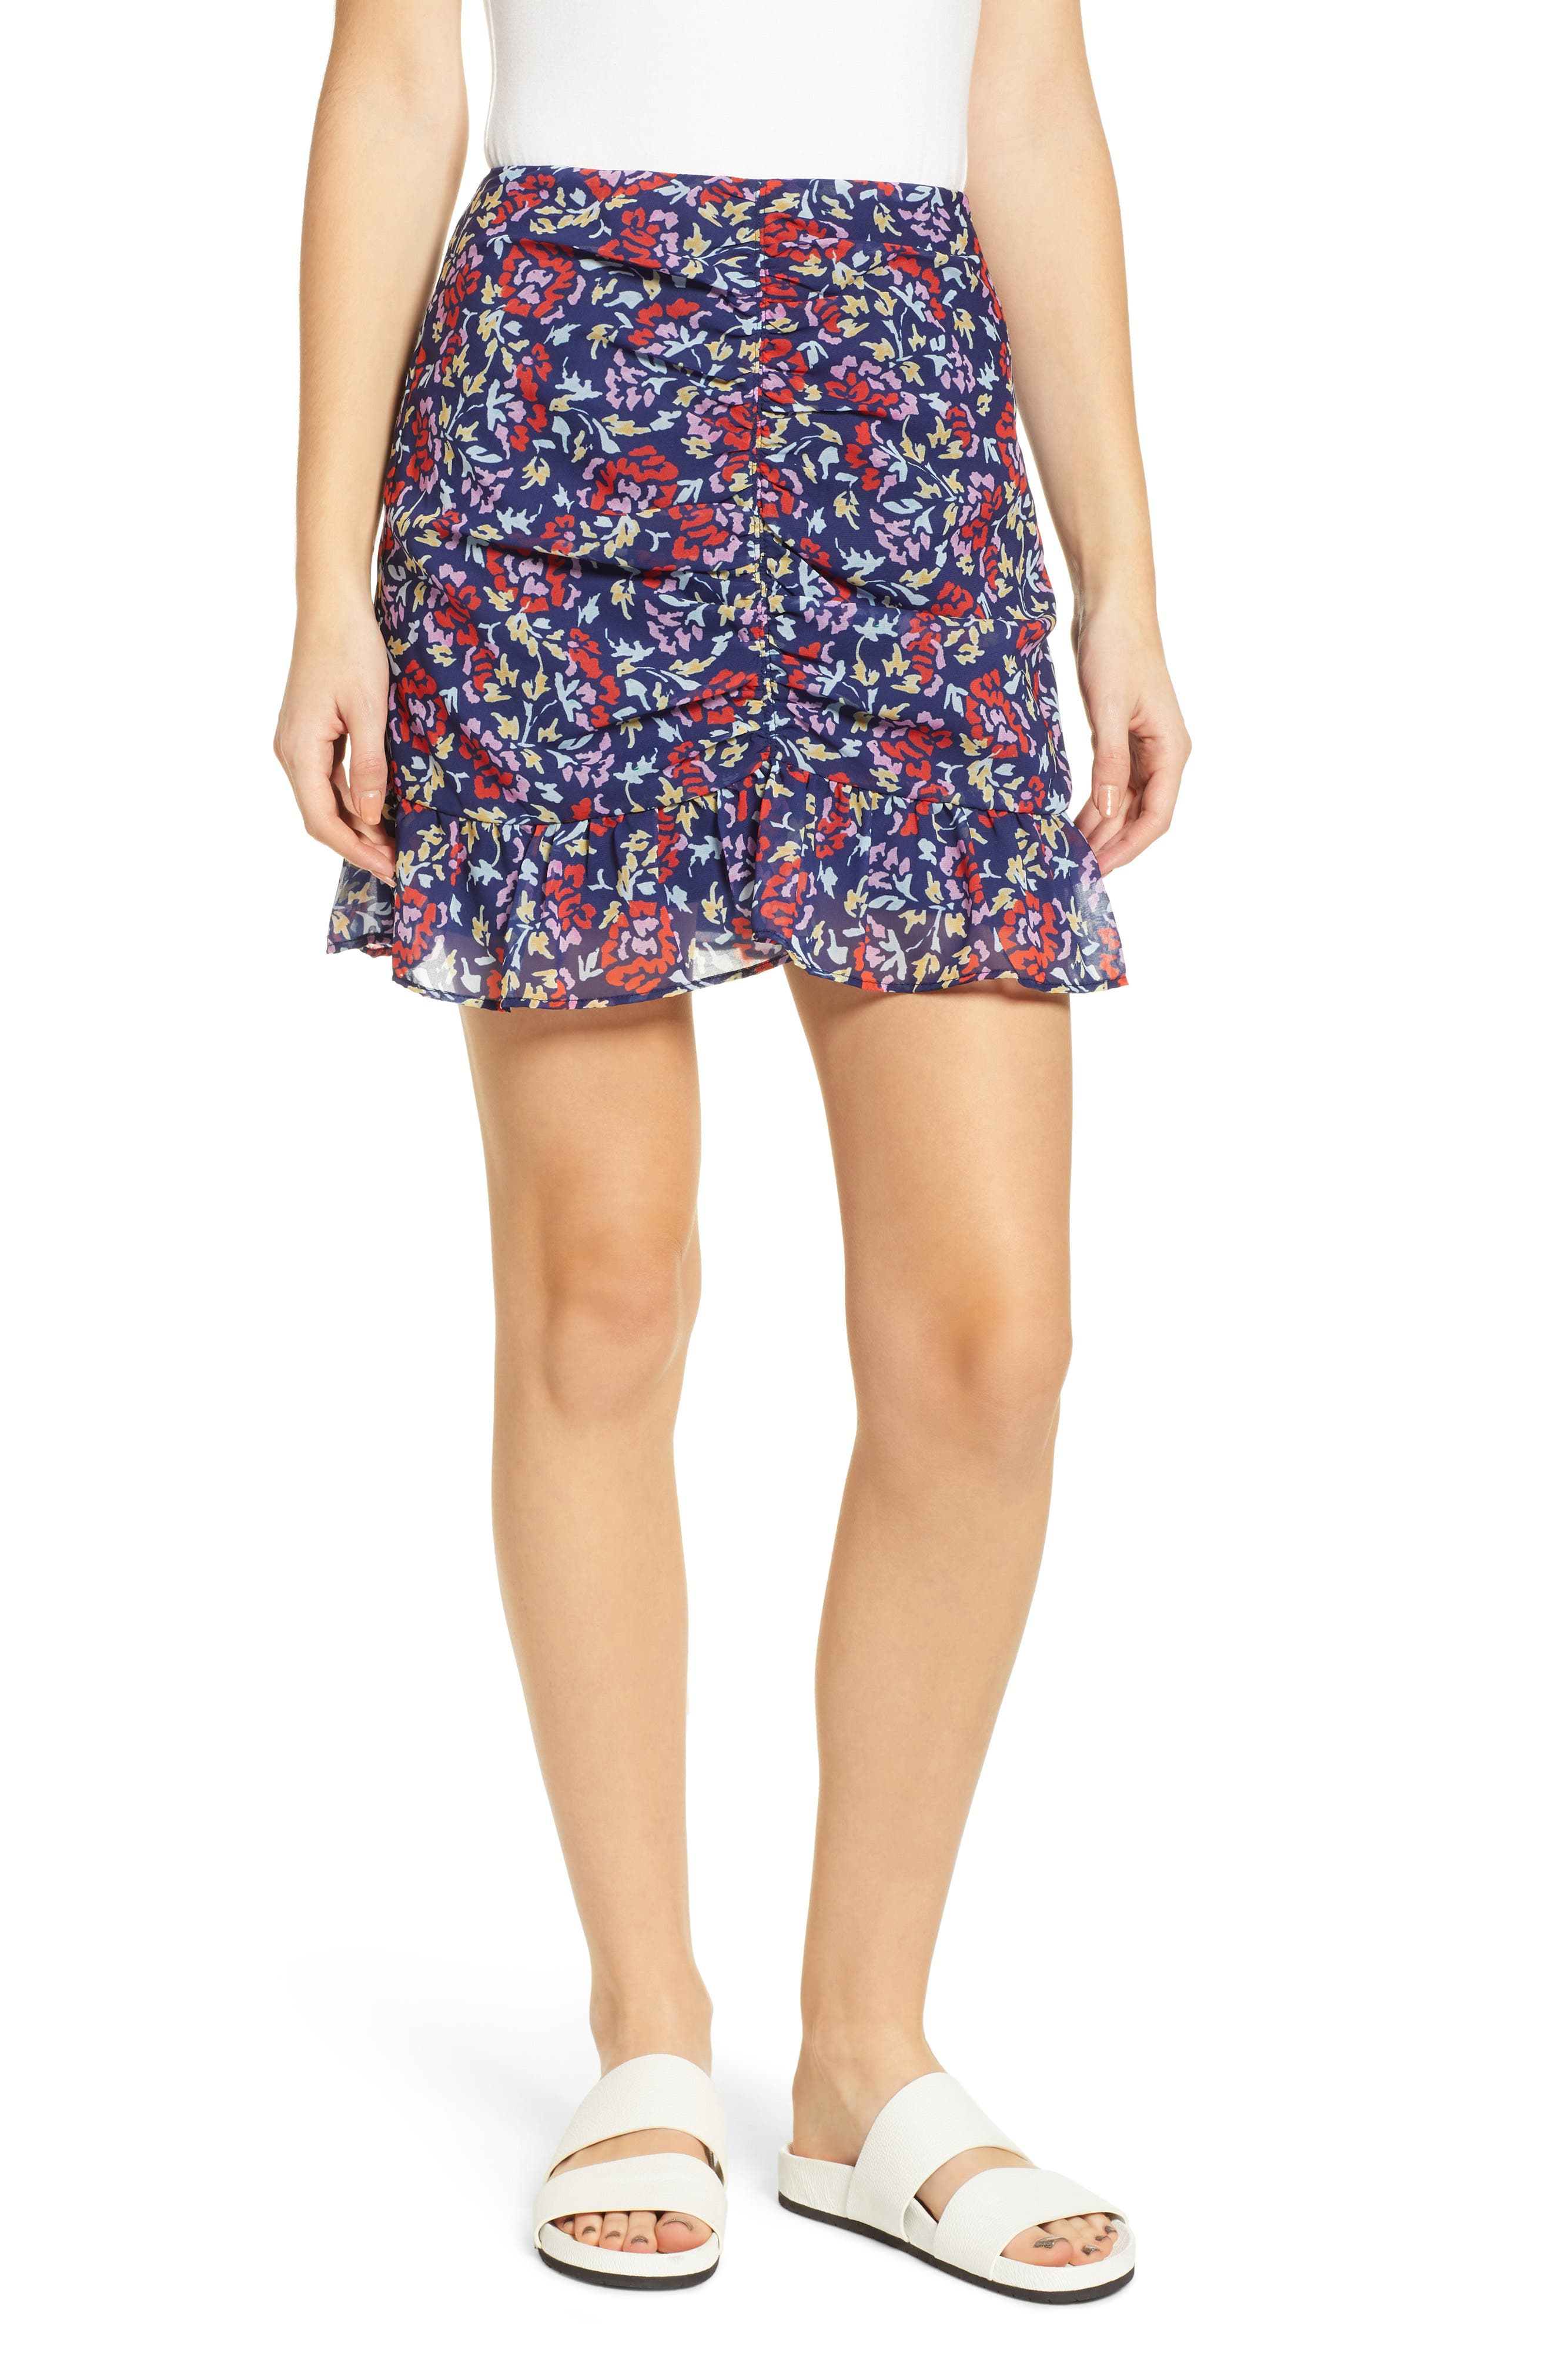 THE FIFTH LABEL Ruched Floral Print Miniskirt, Main, color, NAVY/ SCARLET WATERCOLOR